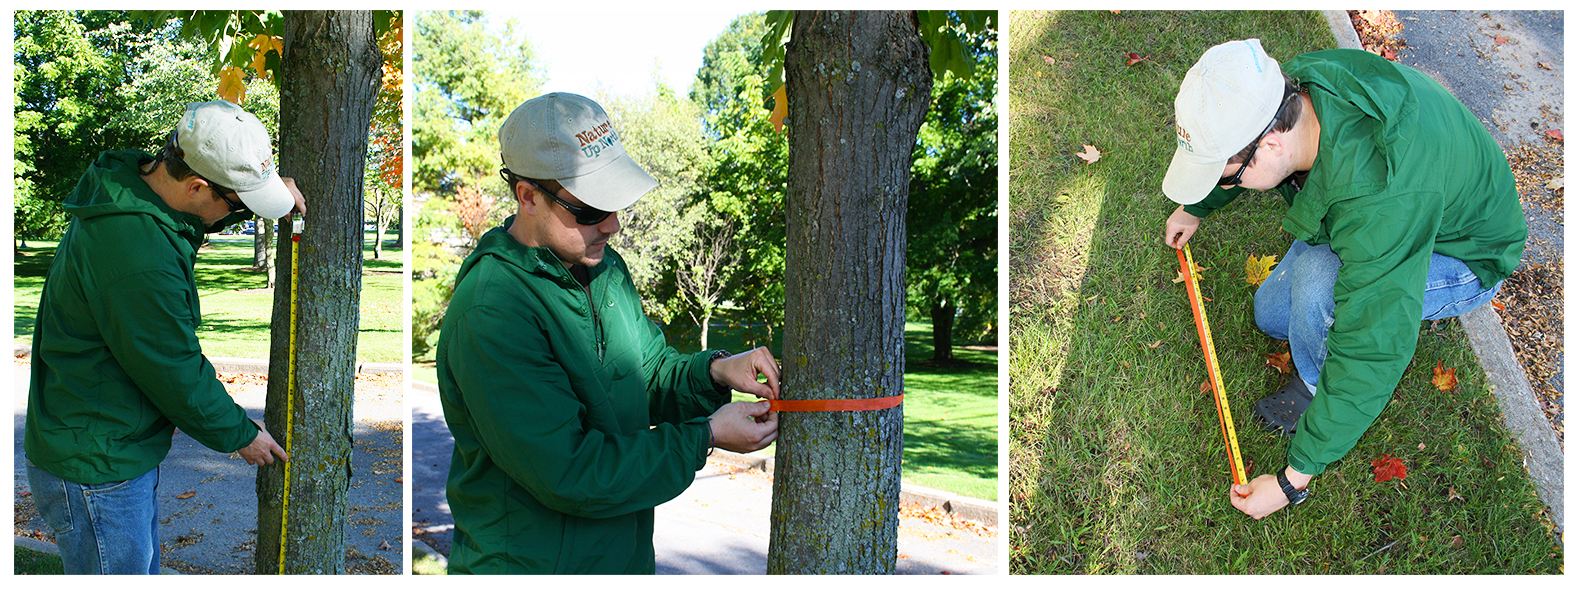 Measure the circumference of you maple tree with a cloth tape measure or string.